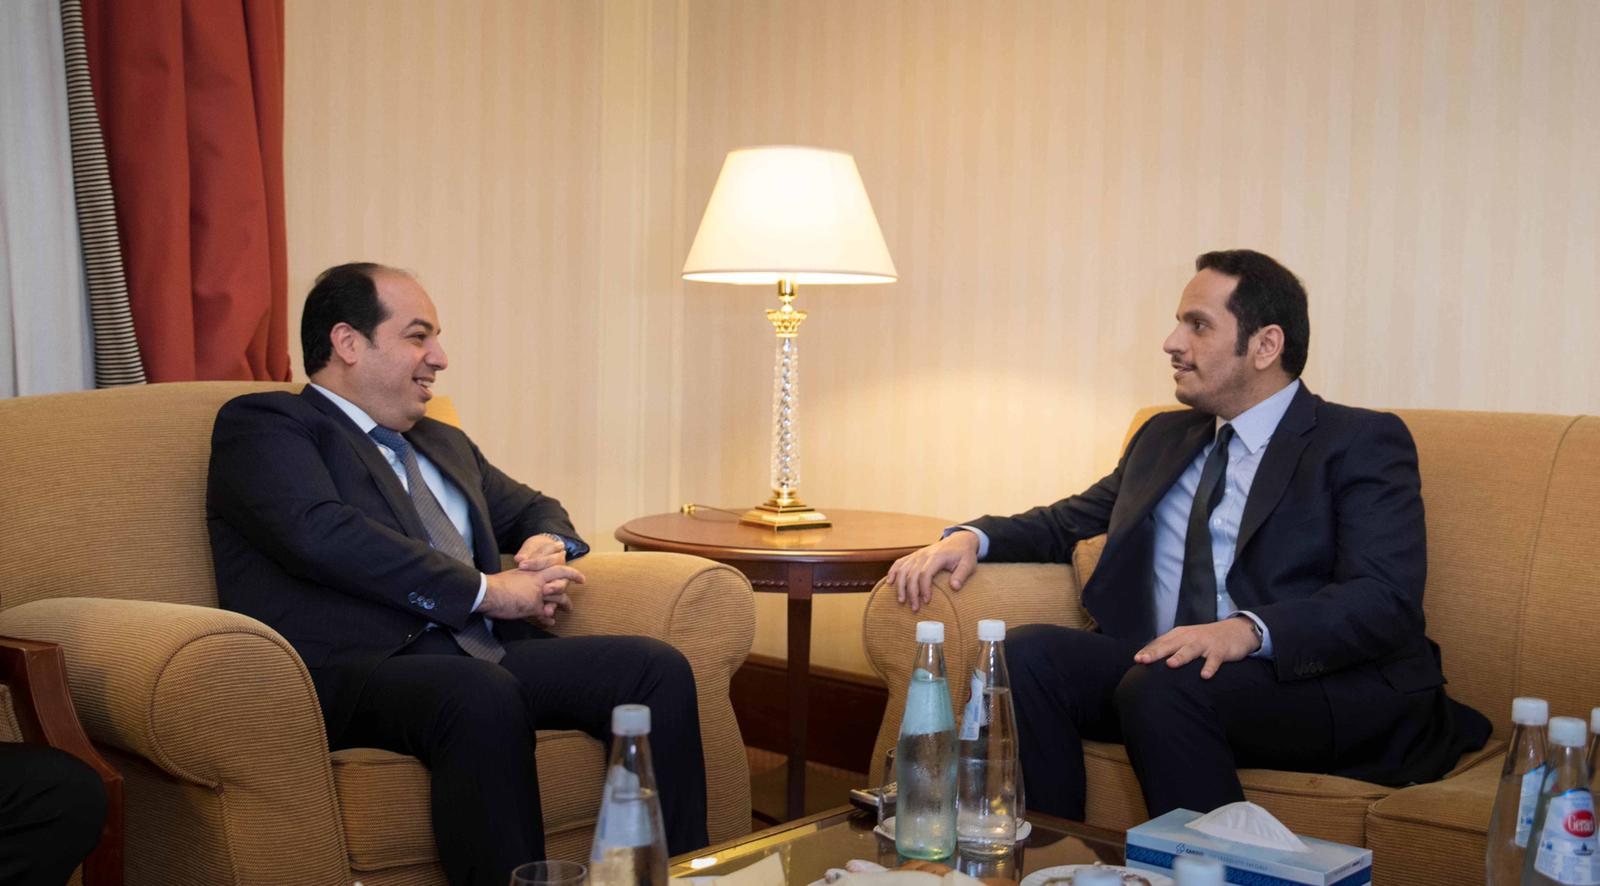 Deputy Prime Minister and Minister of Foreign Affairs Meets Vice-chairman of Libyan GNA's Presidential Council